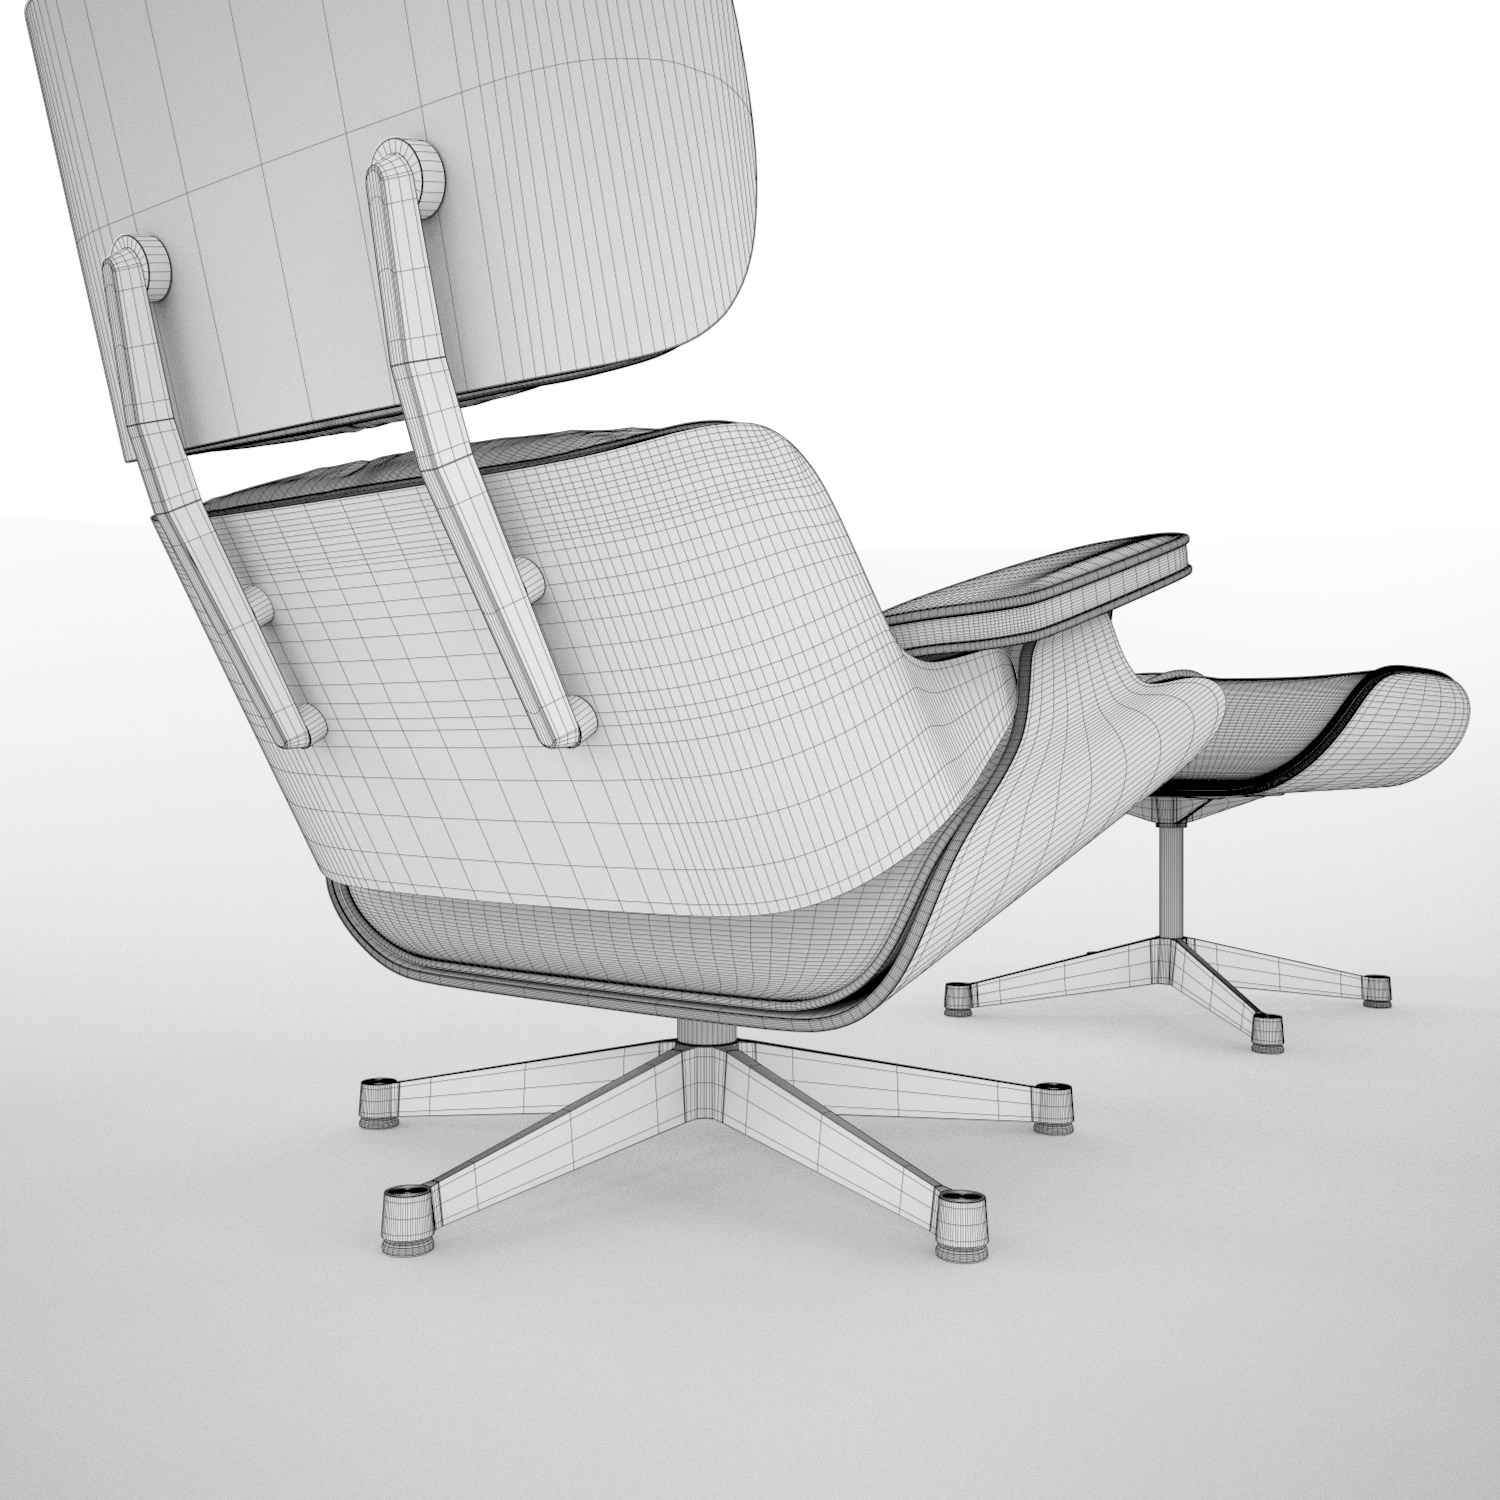 Vitra lounge eames chair hi poly 3d model c4d for Vitra lounge chair nachbau